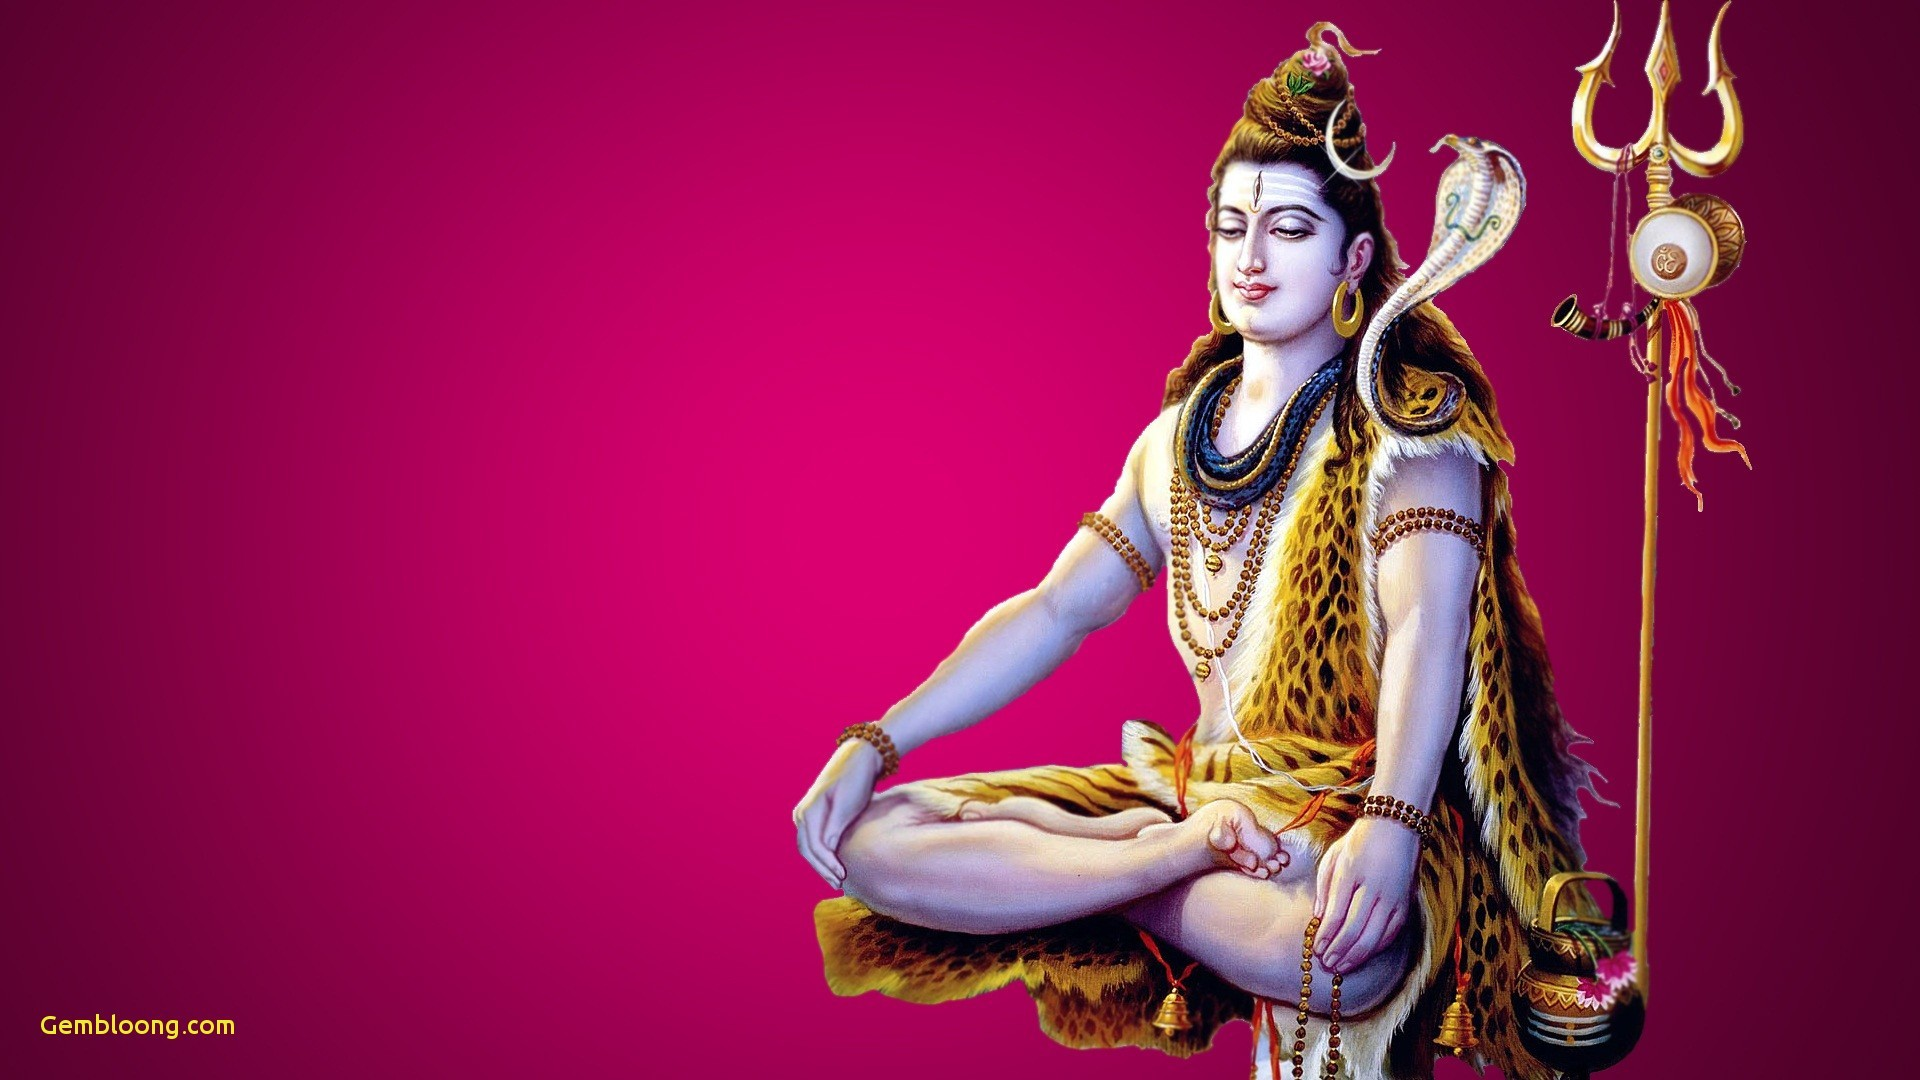 1920x1080 shiva wallpaper hd 3d download #541170